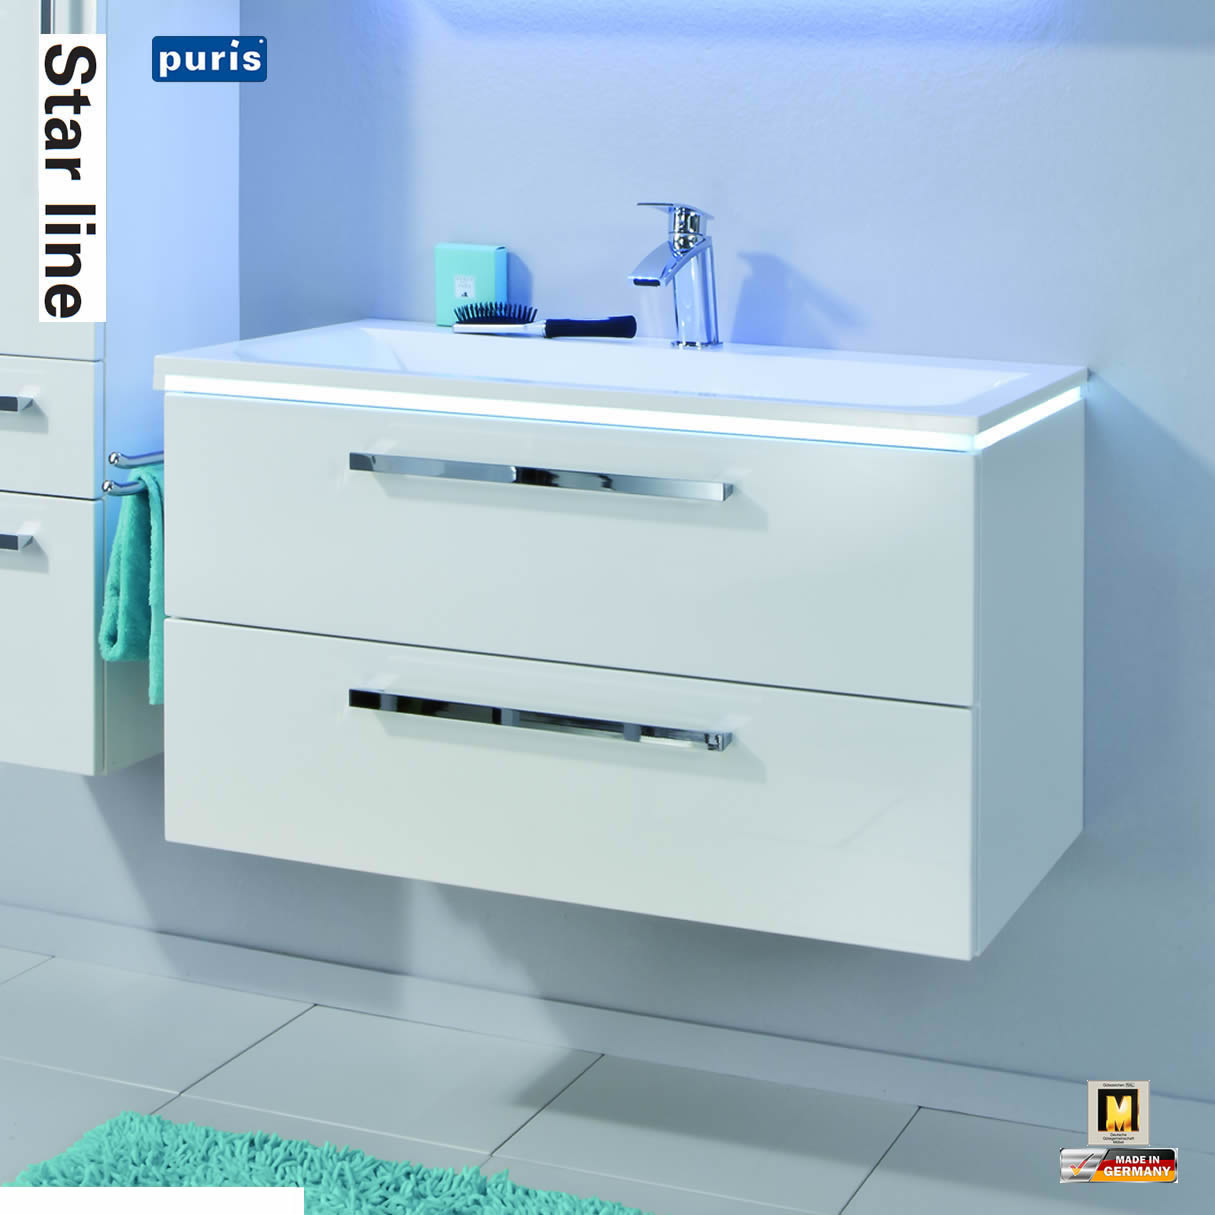 puris star line 90 cm unterschrank 2 ausz ge mit einzelwaschtisch 090 ewt 2 impuls home. Black Bedroom Furniture Sets. Home Design Ideas